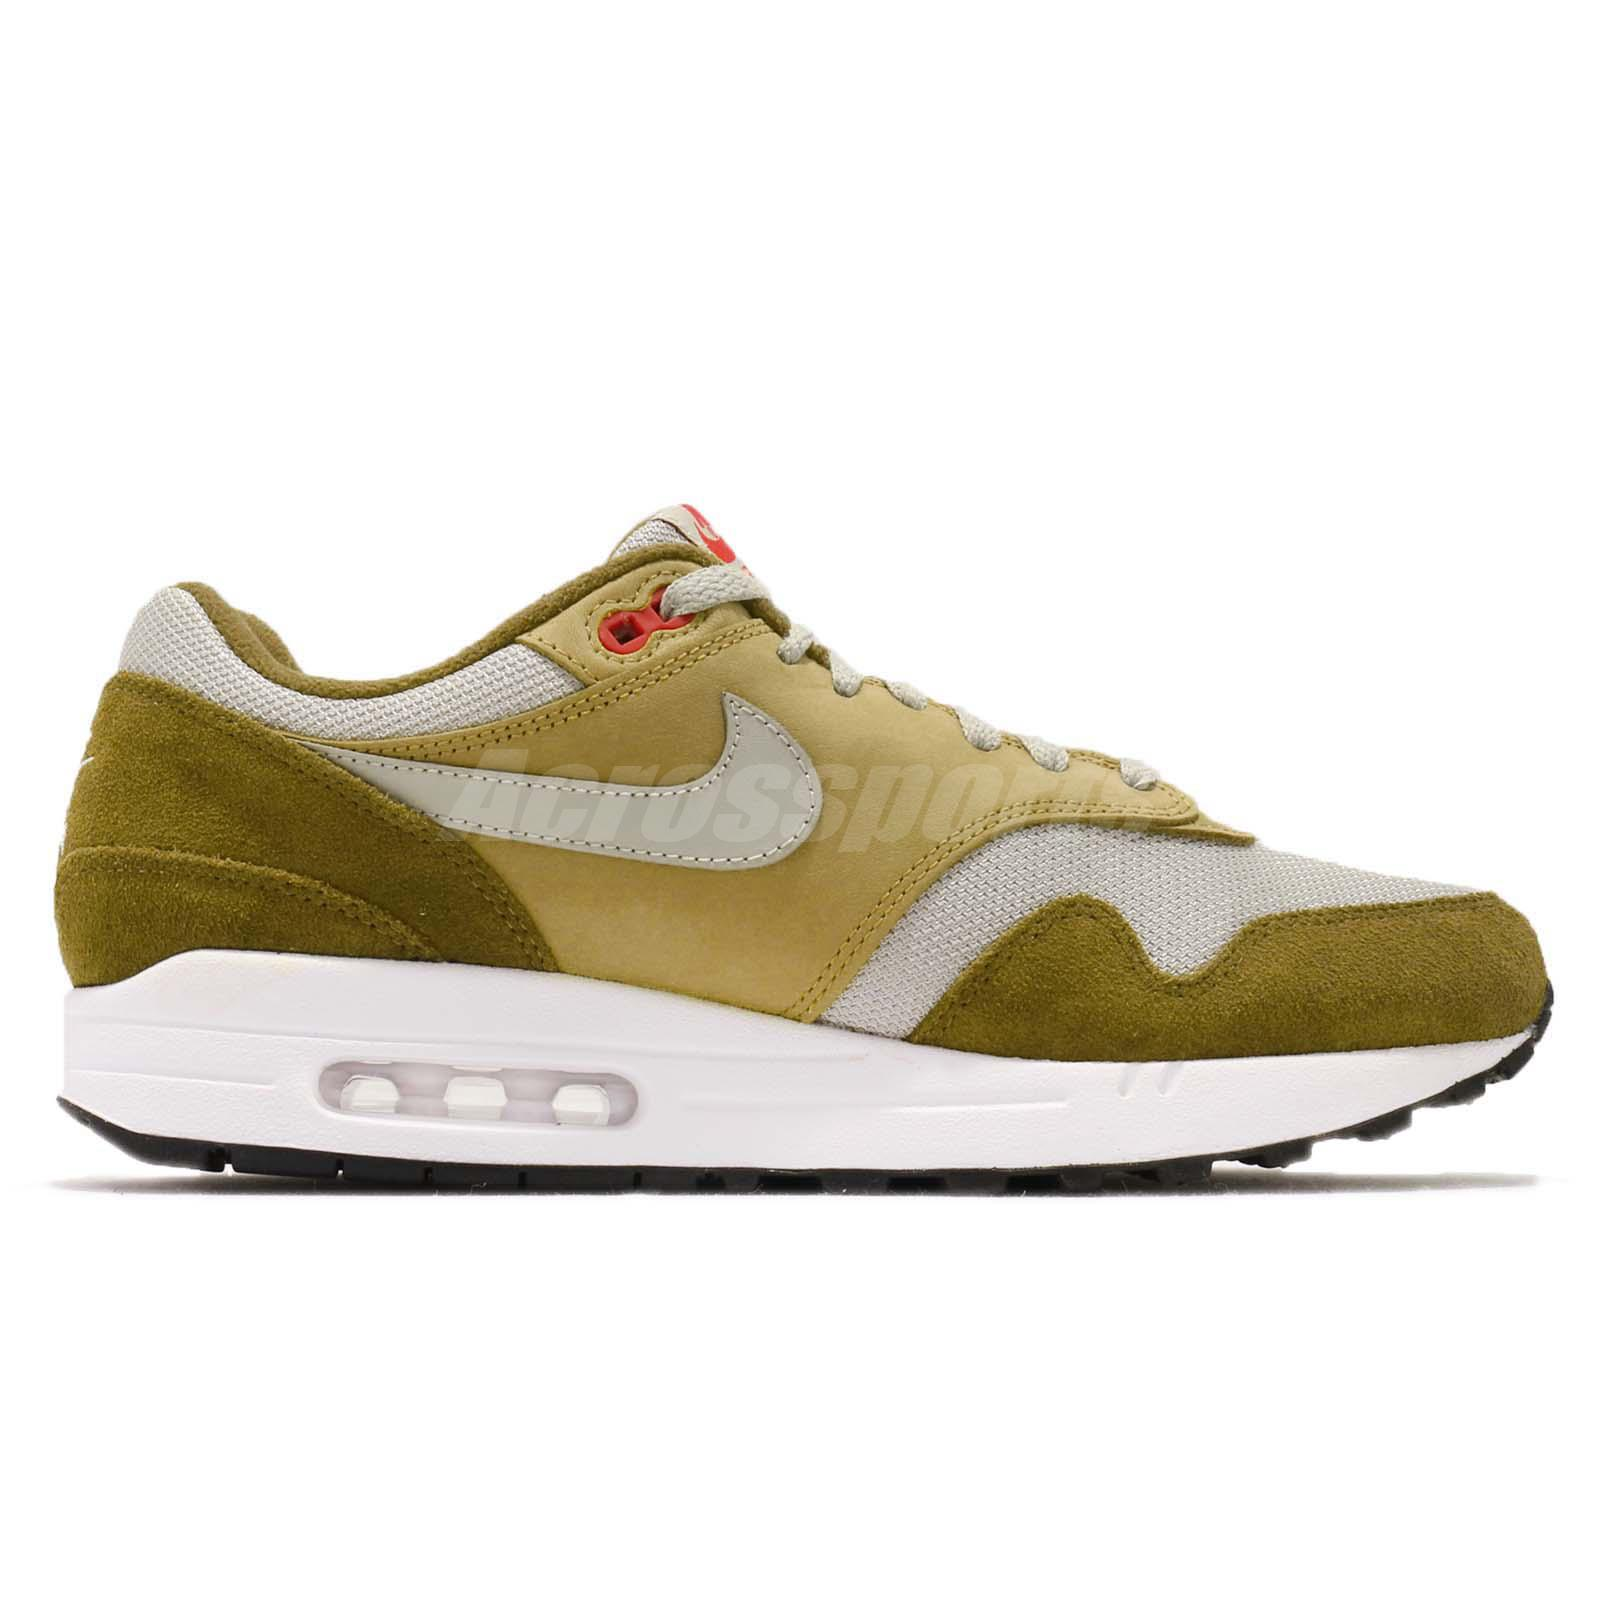 Details about atmos X Nike Air Max 1 Premium Retro Green Curry Men Running Shoes 908366 300